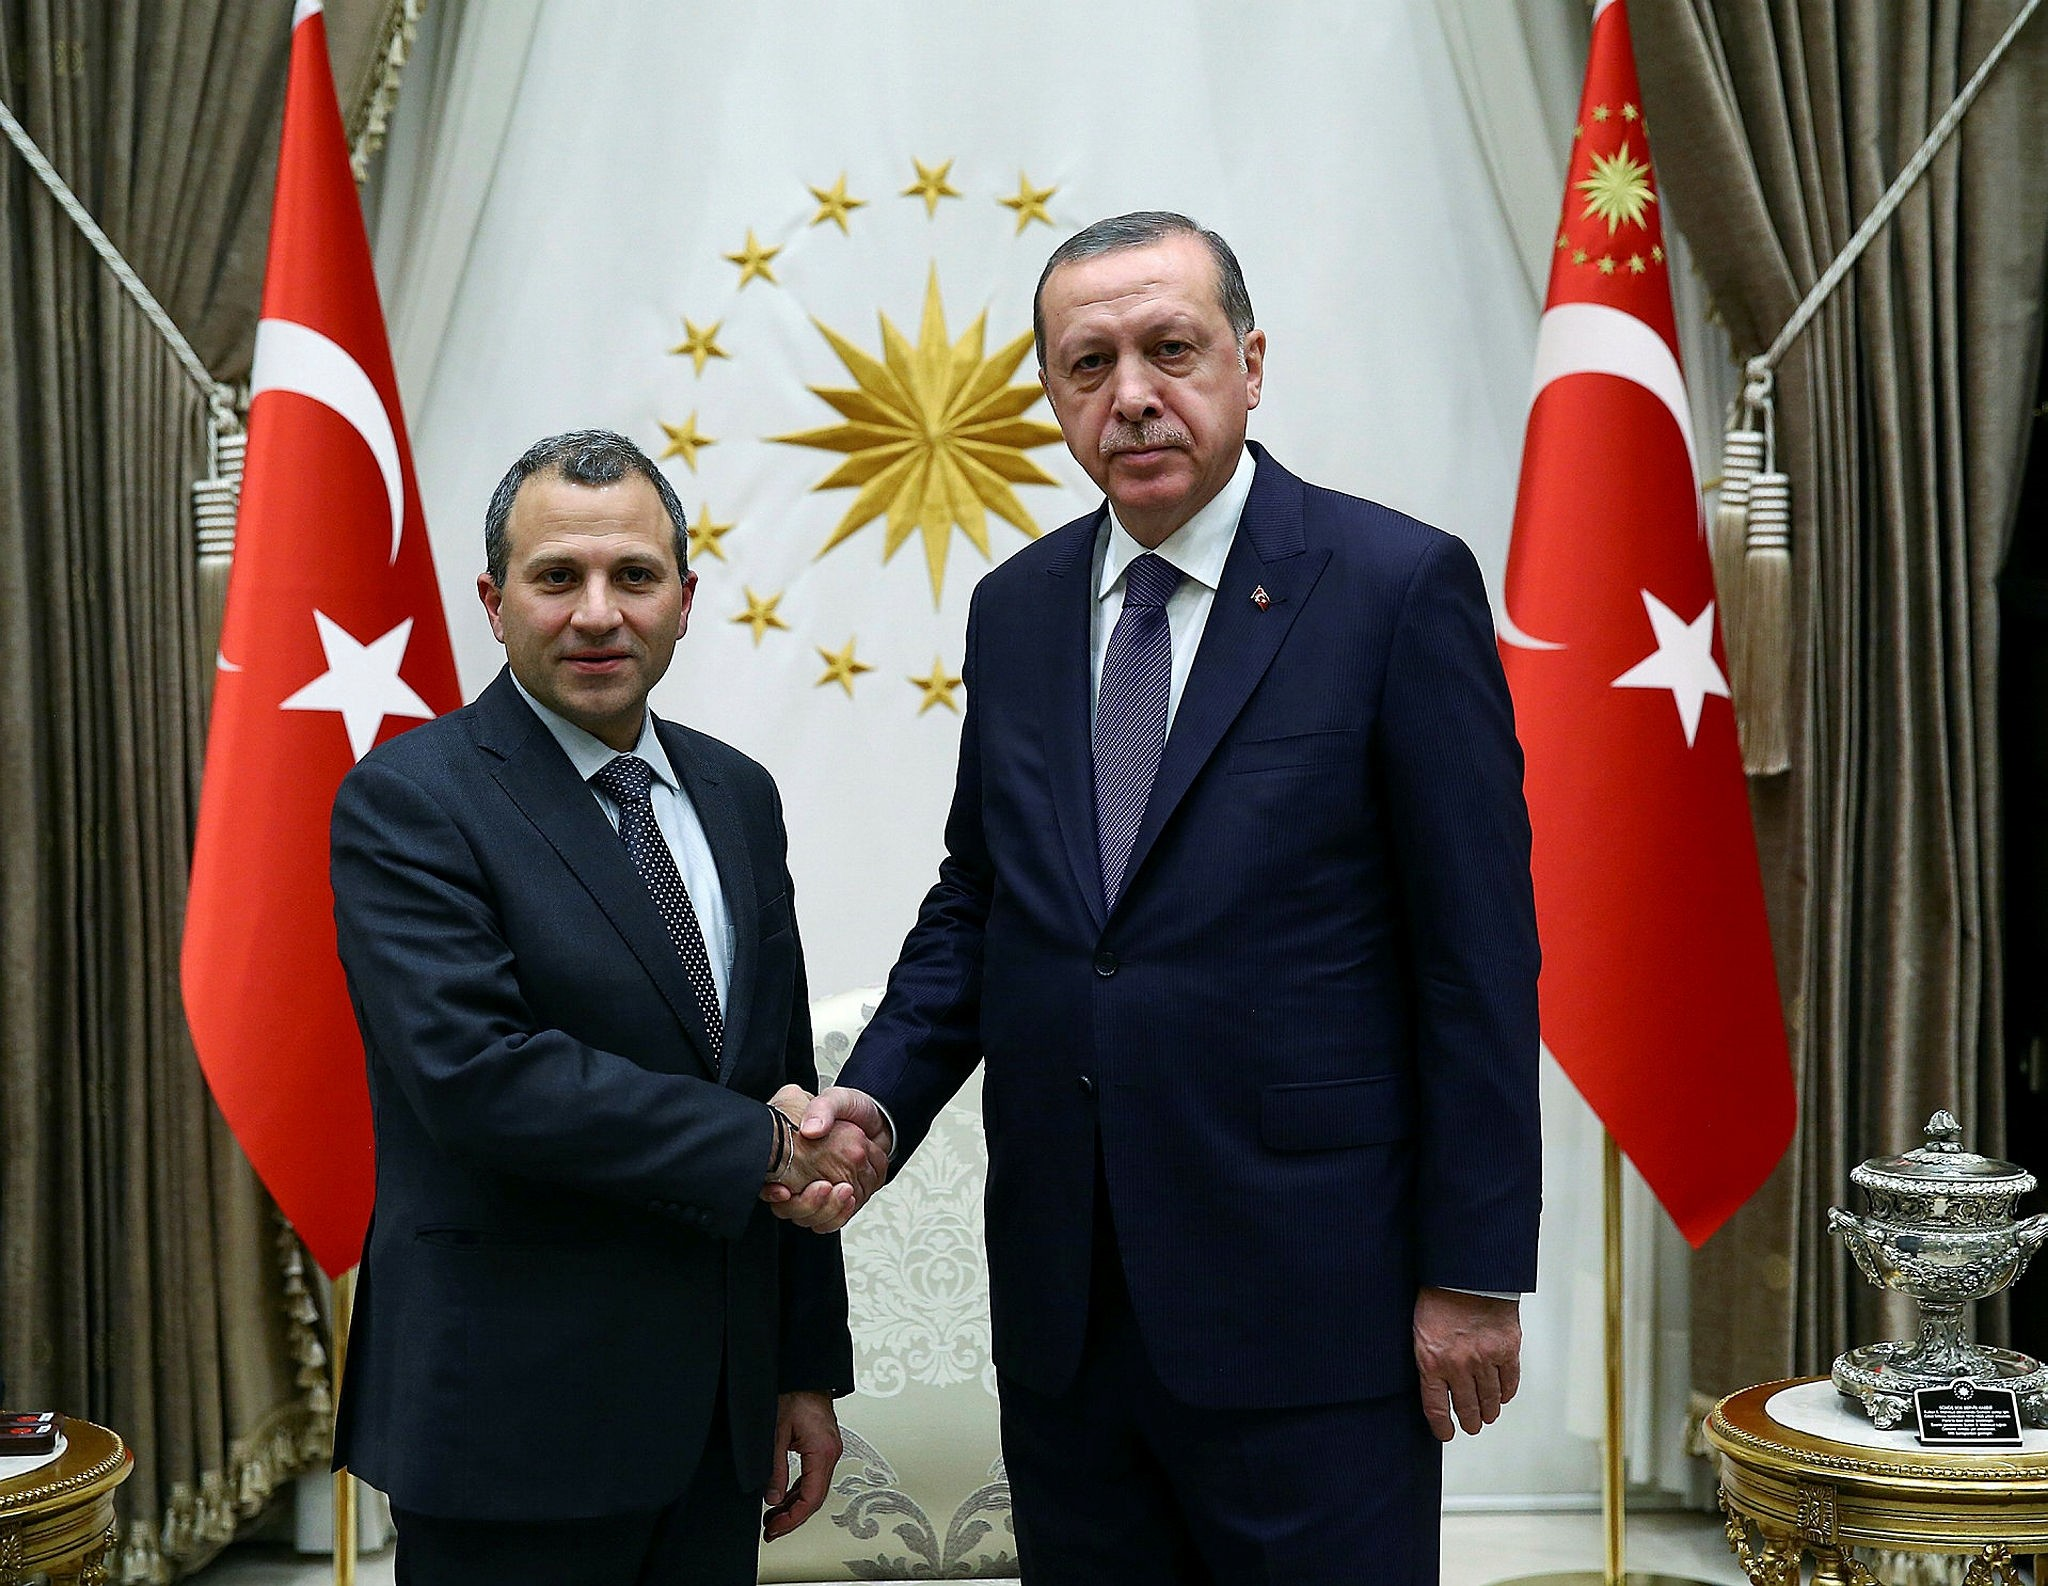 Bassil (L) and Erdou011fan shaking hands (Photo by Turkish Presidency)